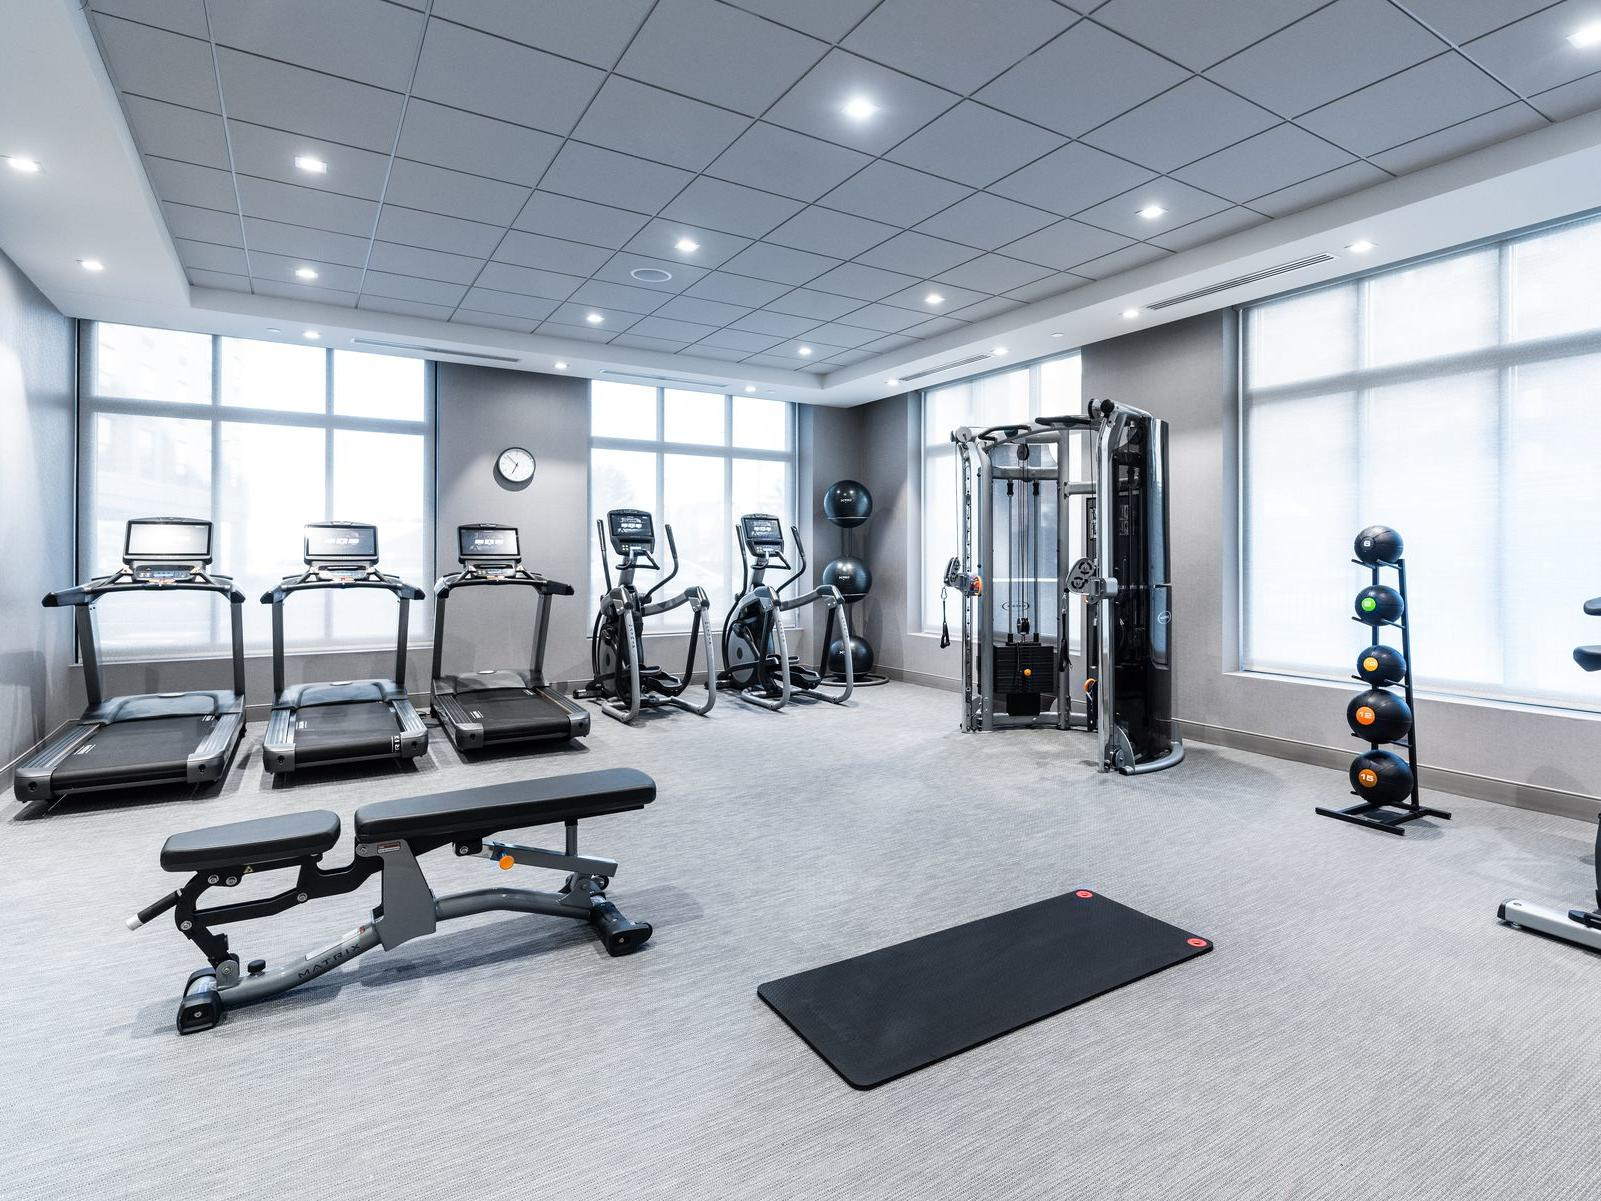 fitness center with treadmills, medicine balls and other workout equipment